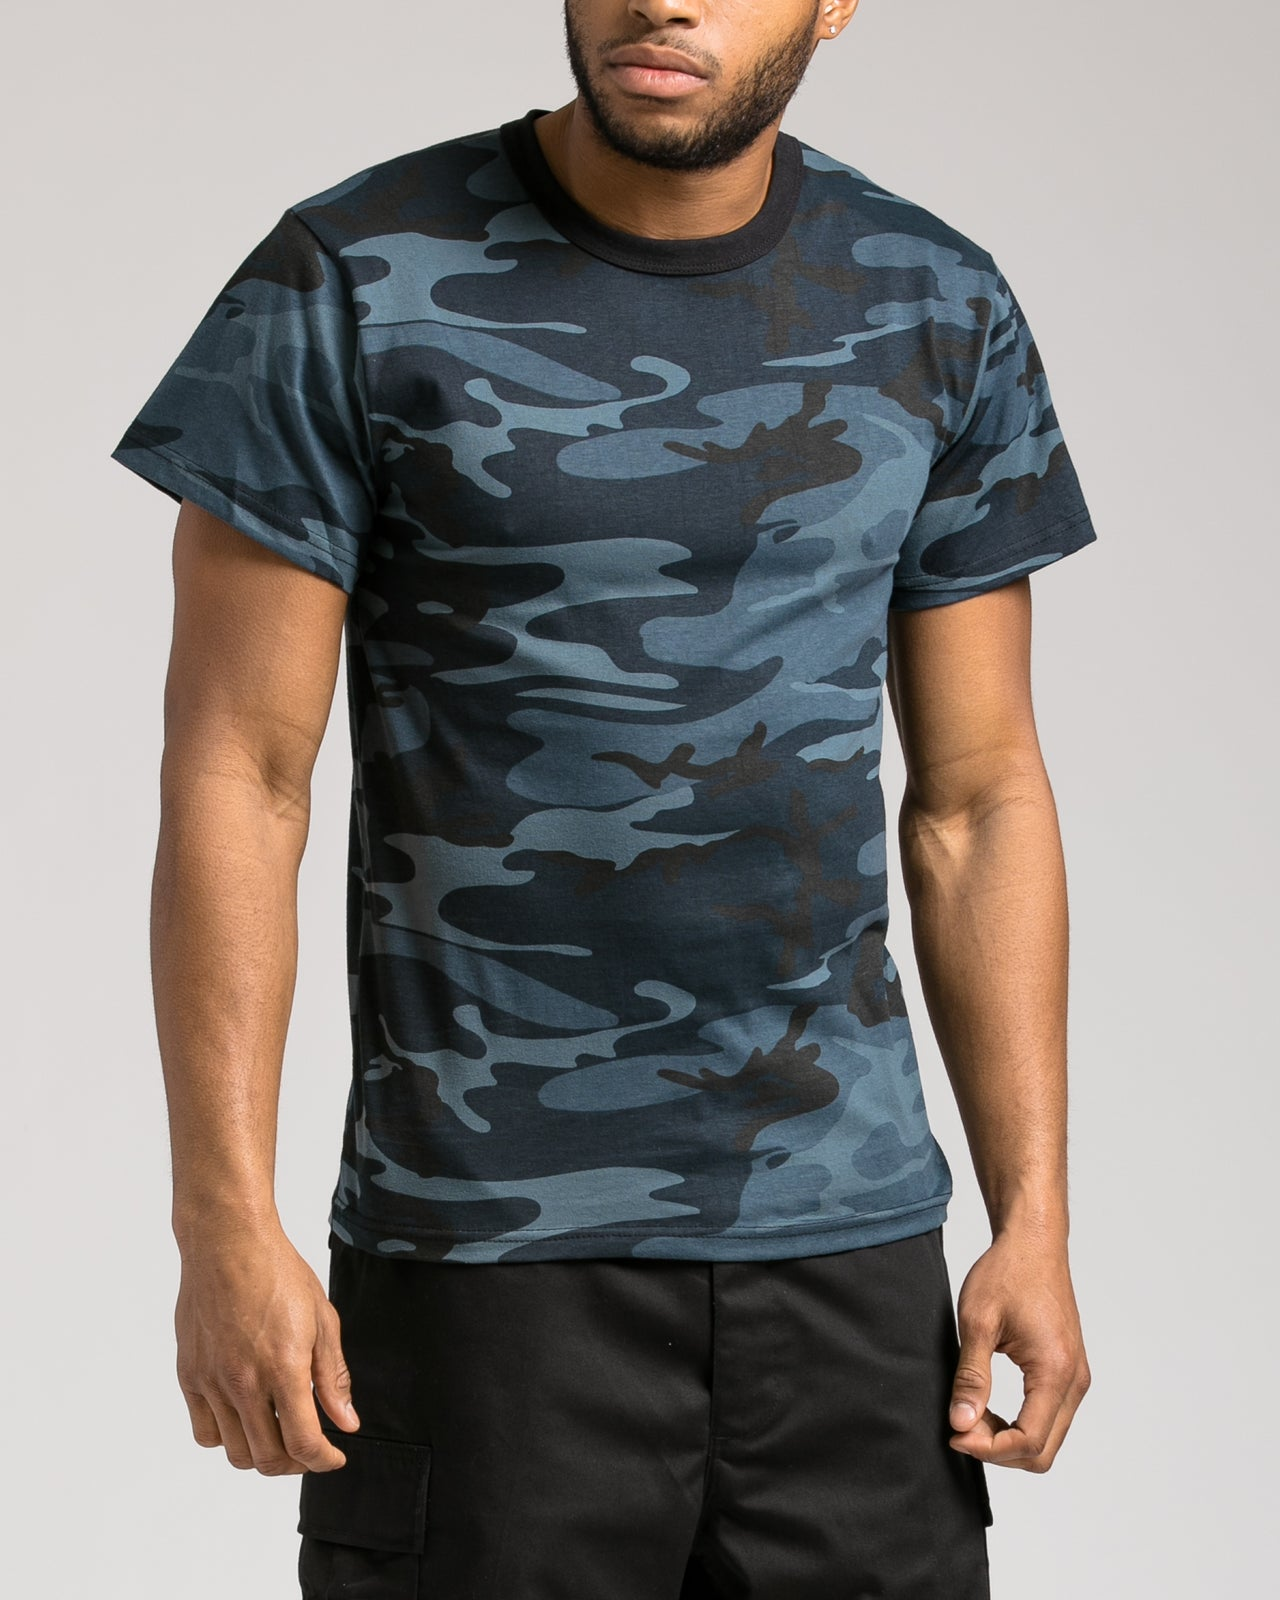 Camo Tee - Color: Midnight Blue Camo | Blue